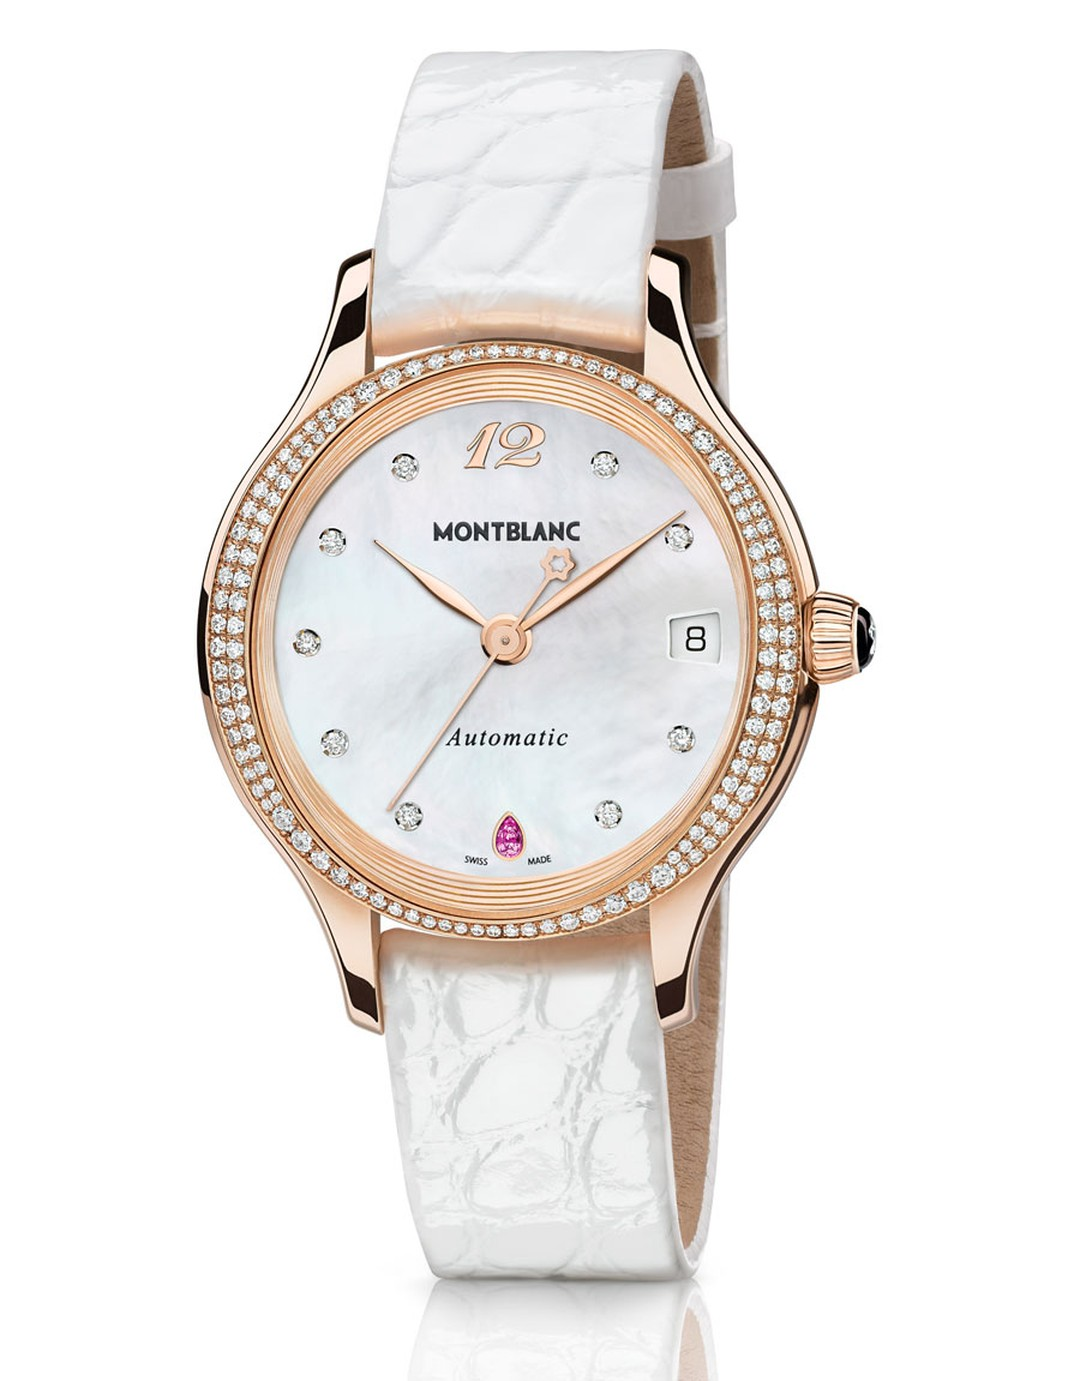 Montblanc-Collection-Princesse-Grace-de-Monaco-automatic.jpg